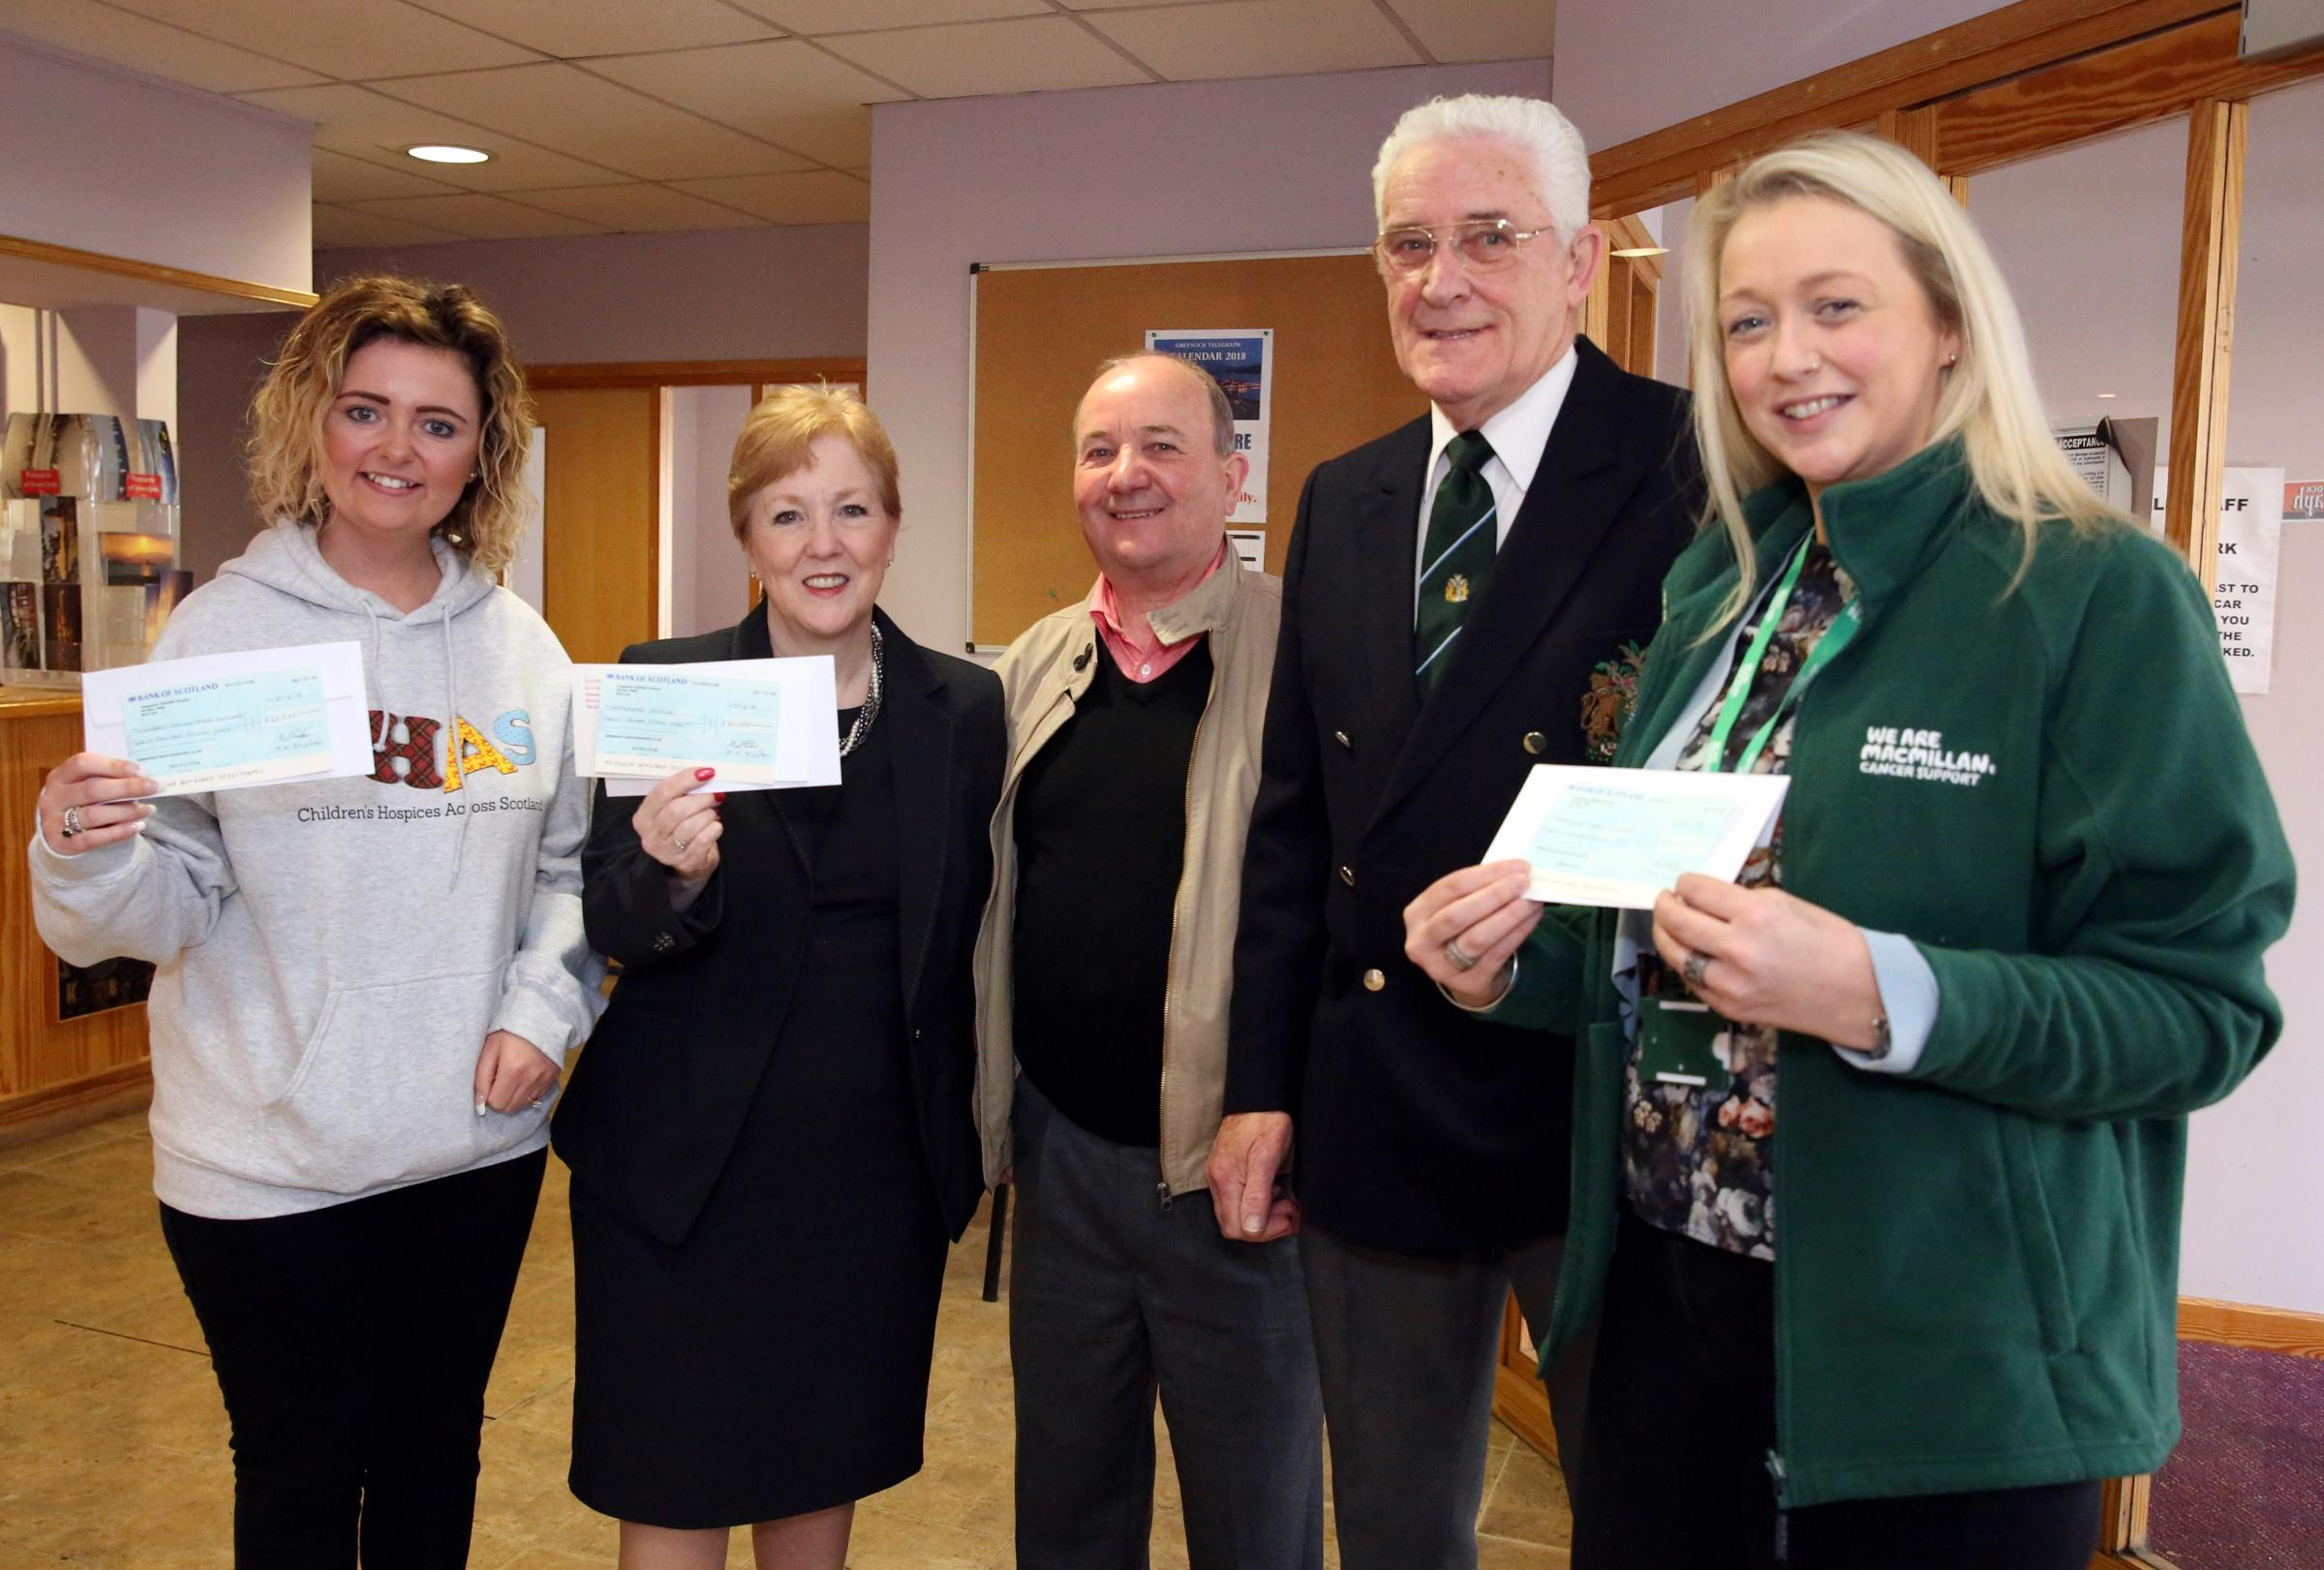 Dockers Club cheques to charities. From left are Samantha Reilly, CHAS, Linda McEnhill, chief executive of Ardgowan Hospice, Jim Molly Dockers secretary, Neil Paton, treasurer, and Cara Inglis from Macmillan Cancer Care.